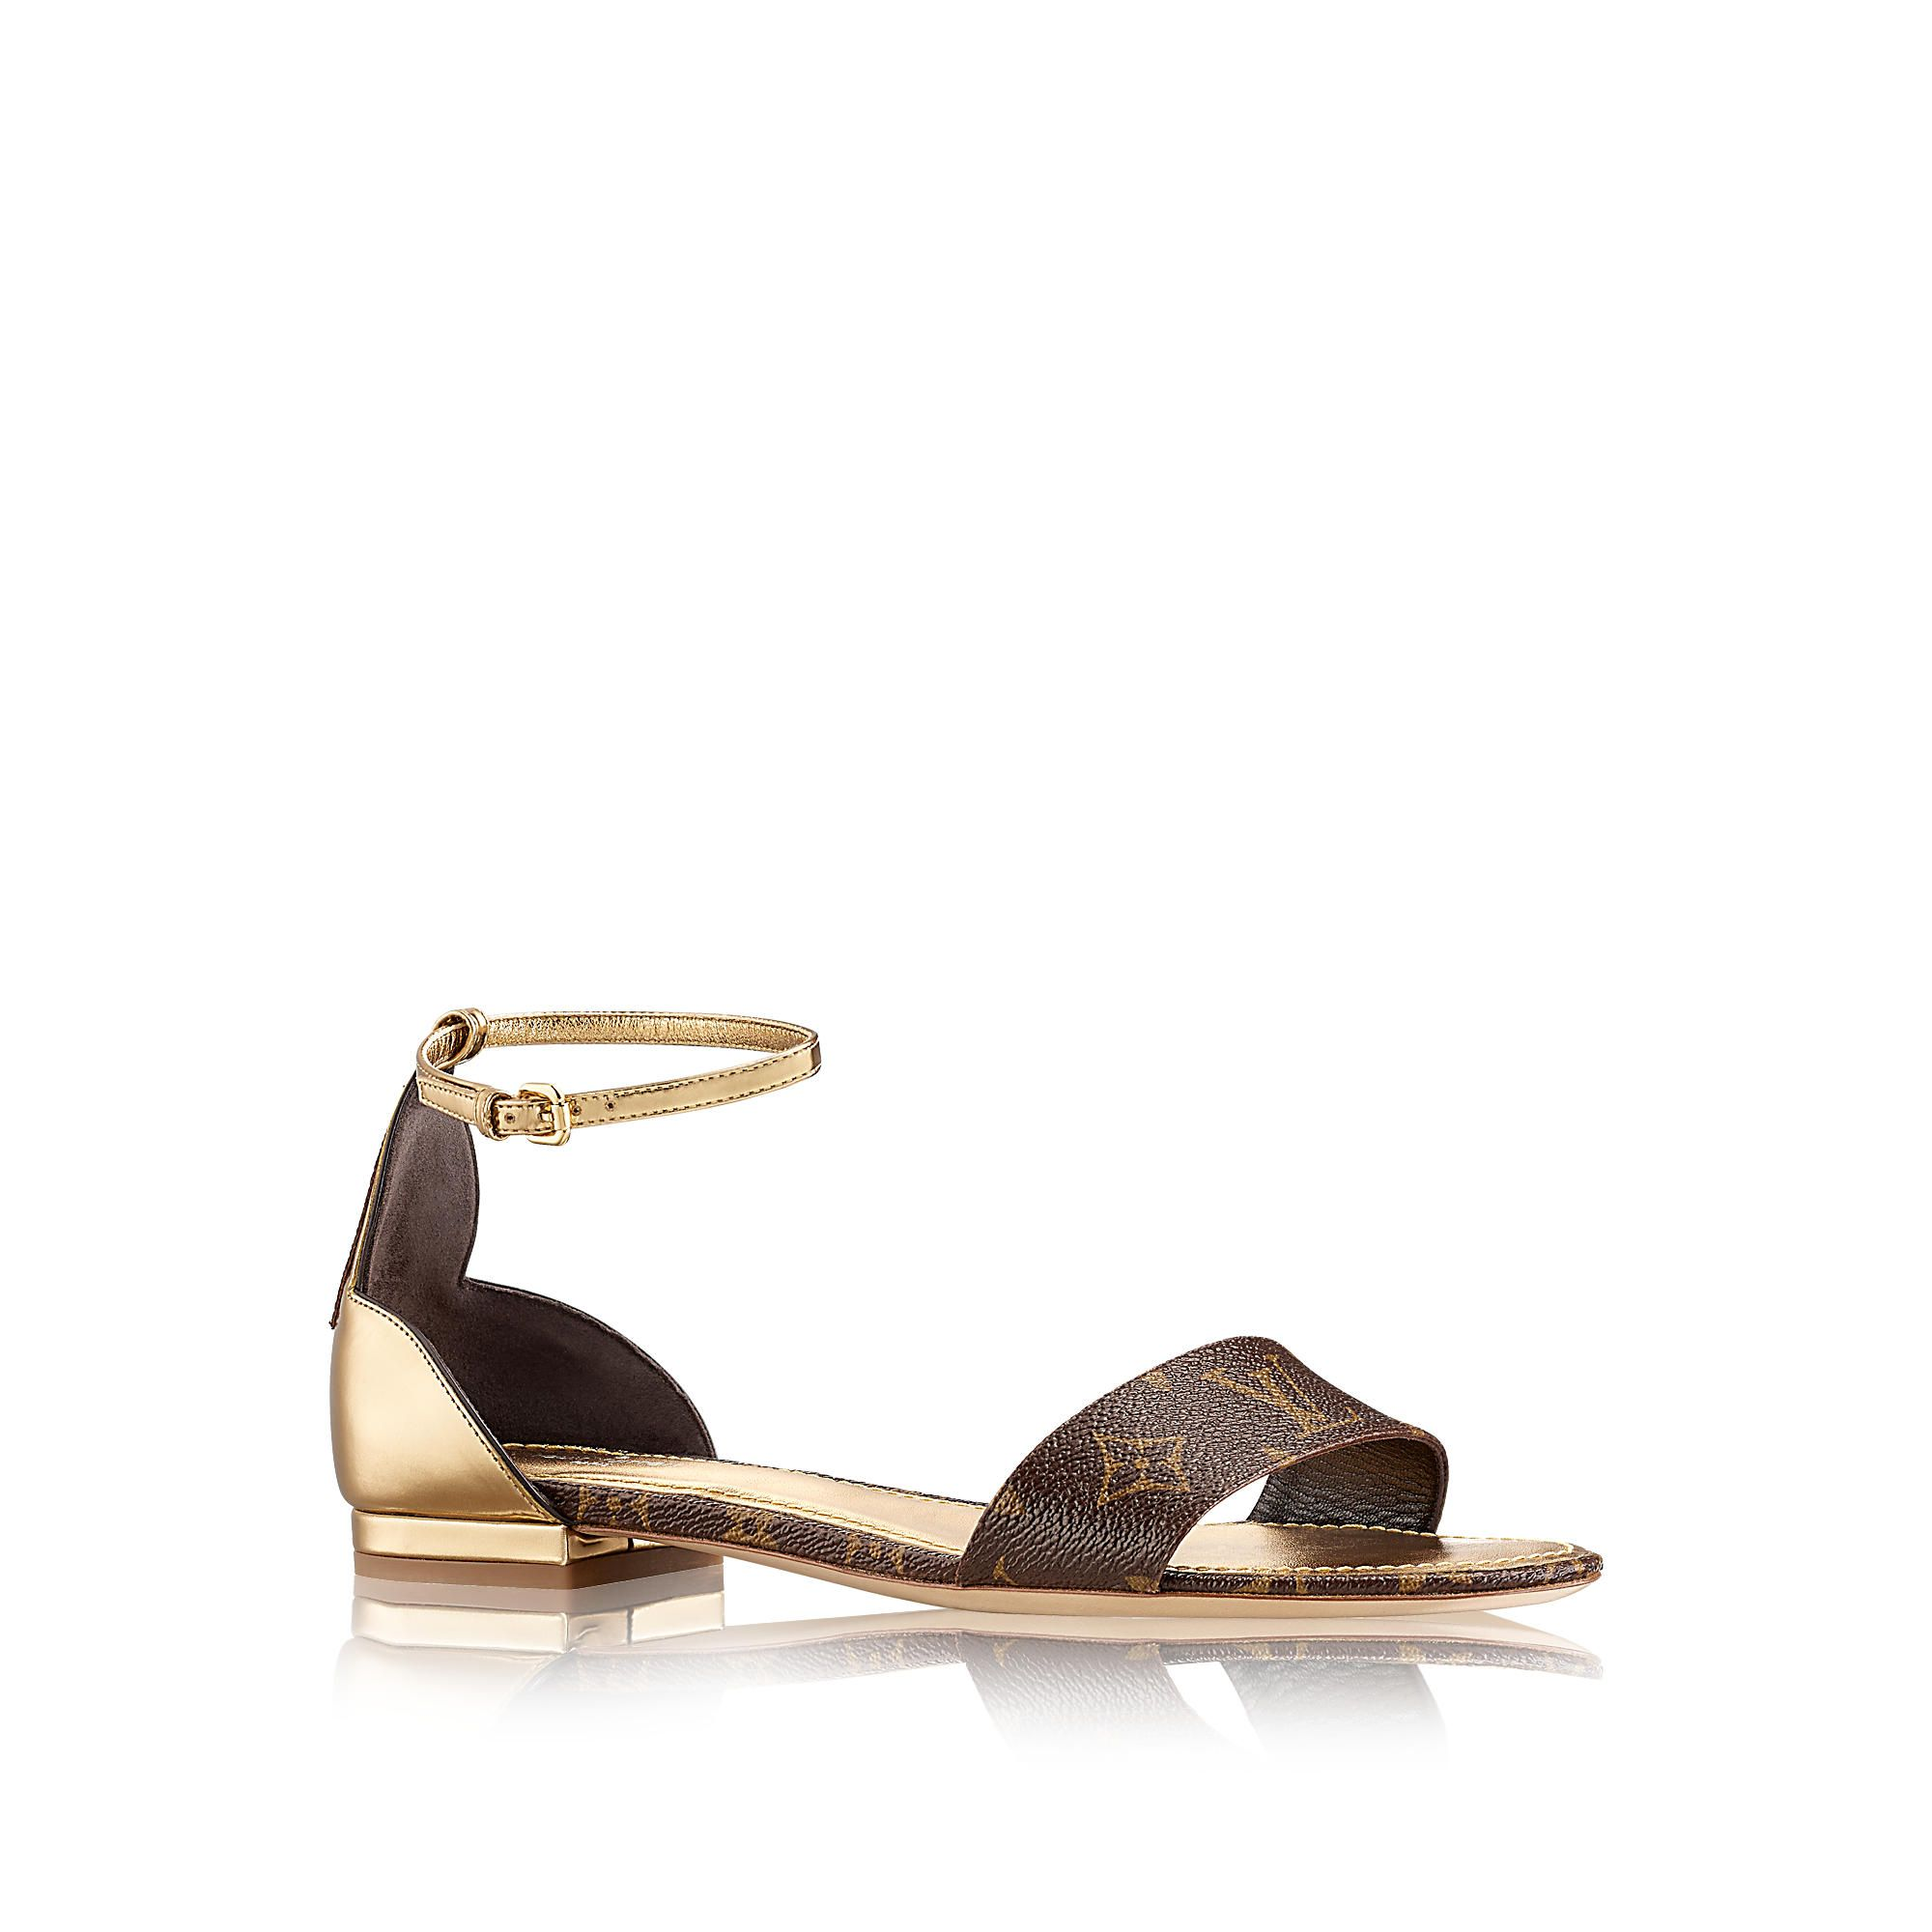 54a588e1f6d Sunshine Sandal via Louis Vuitton